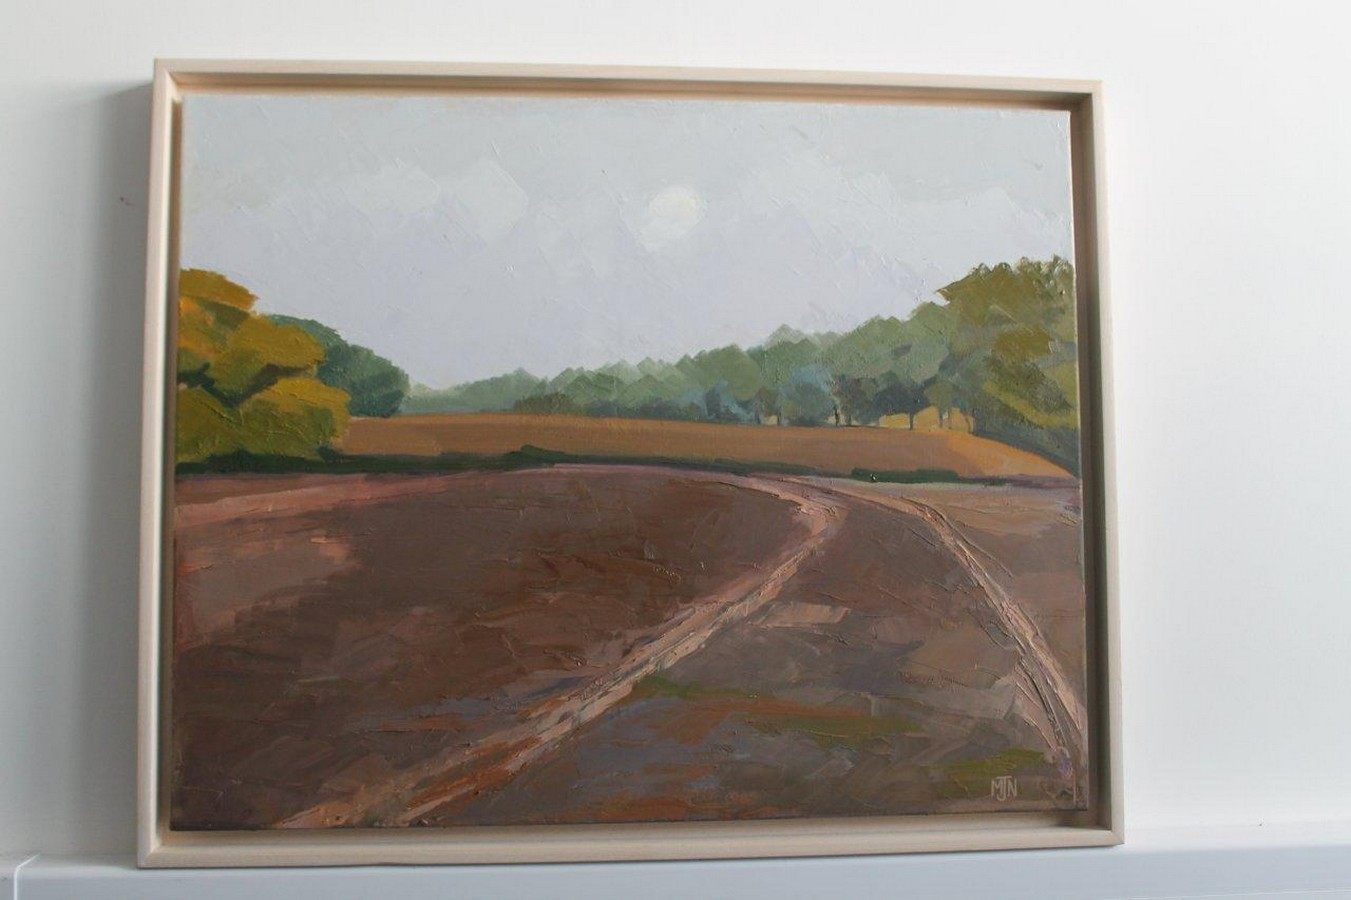 The Plough - an oil painting by Suffolk artist Maxine Northwood. This mounted canvas oil painting is